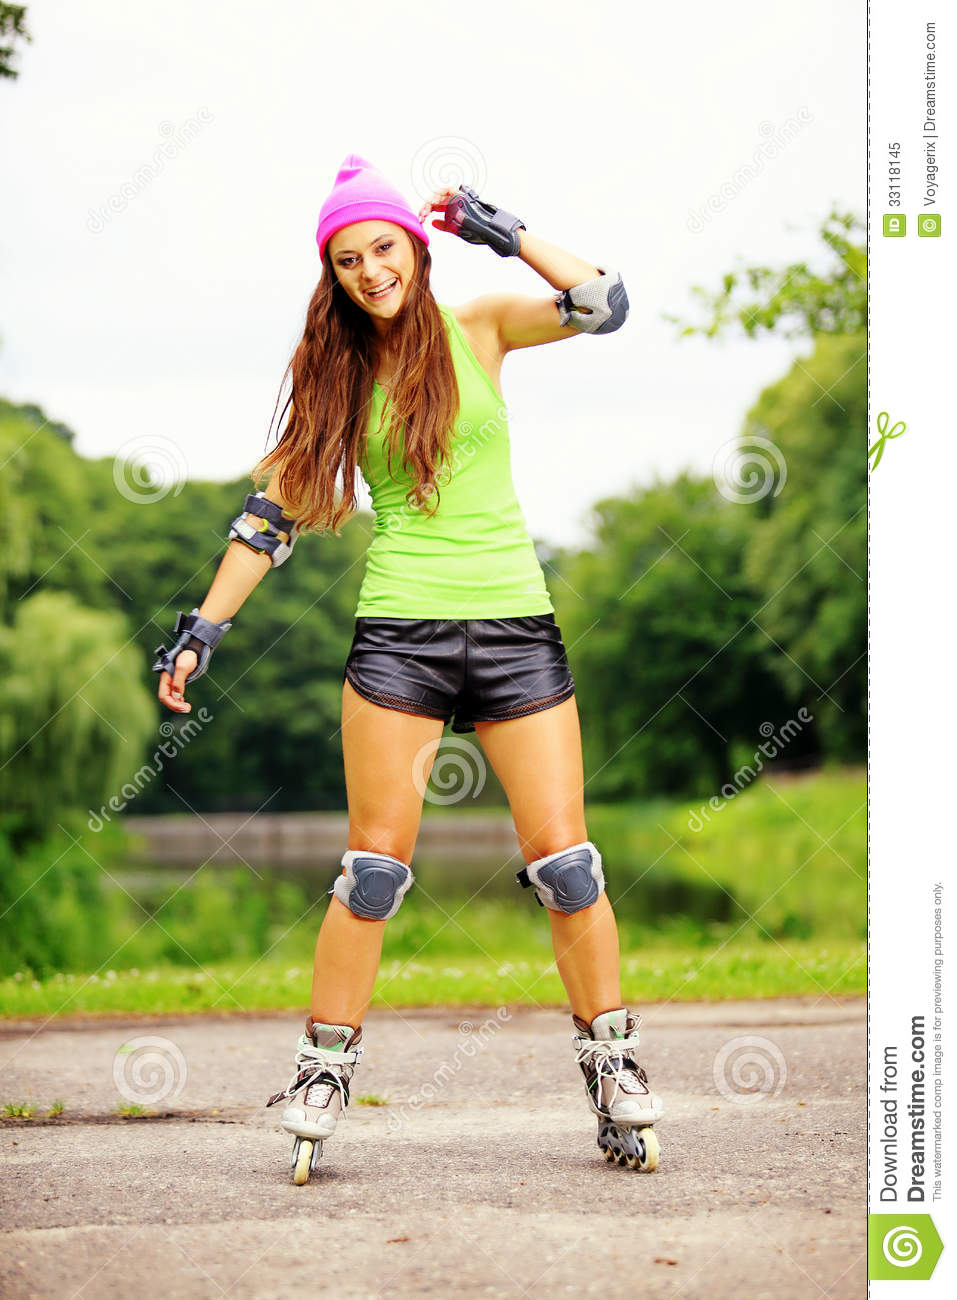 Woman Inline Skating Wiring Diagrams Simple Event Counter Circuit Diagram Tradeoficcom Roller Sport Activity In Park Royalty Free Women Pics Speed